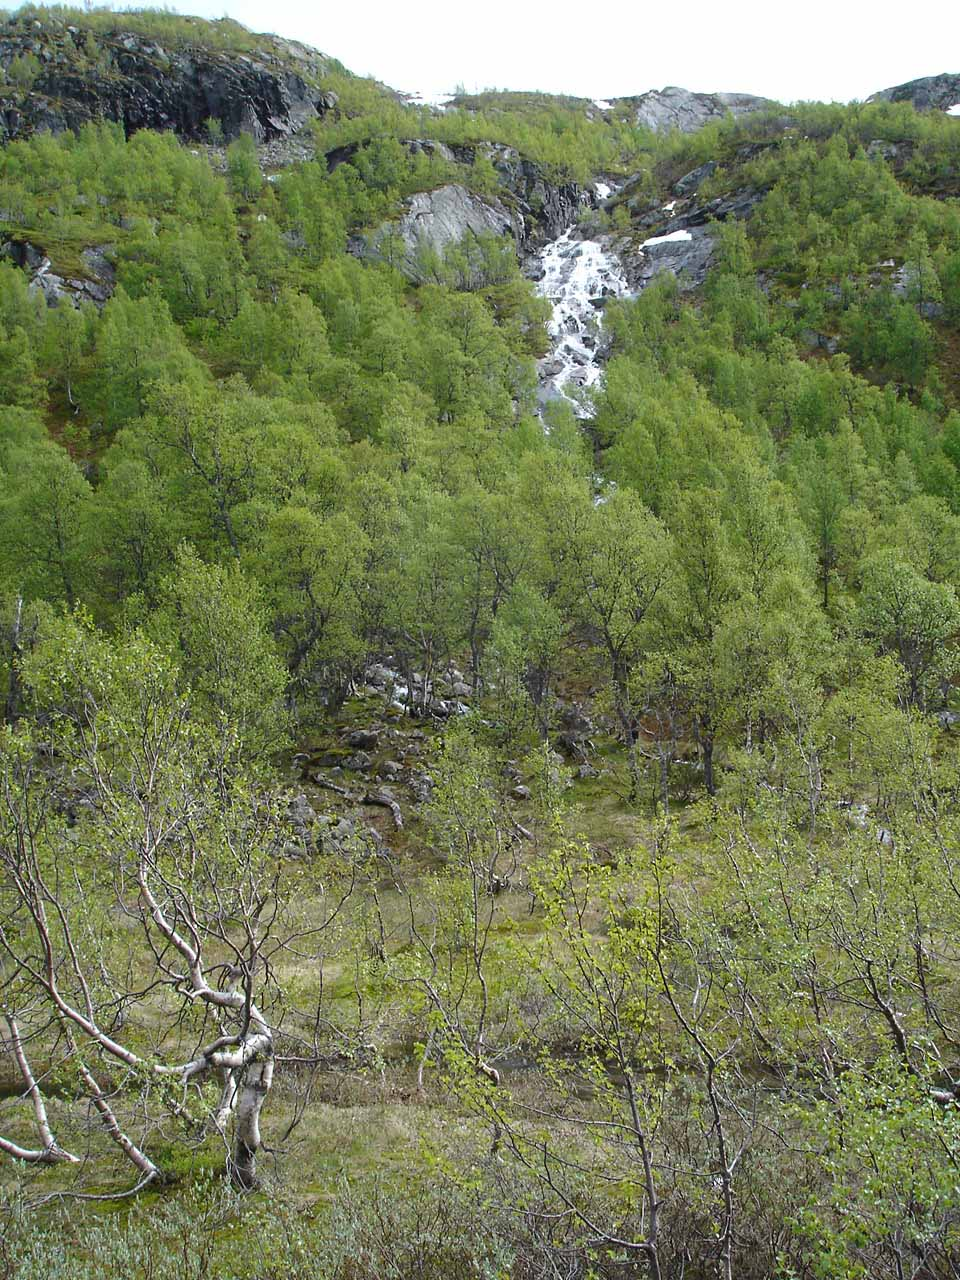 Some waterfall we saw as we were driving between Rjukan and Setesdal